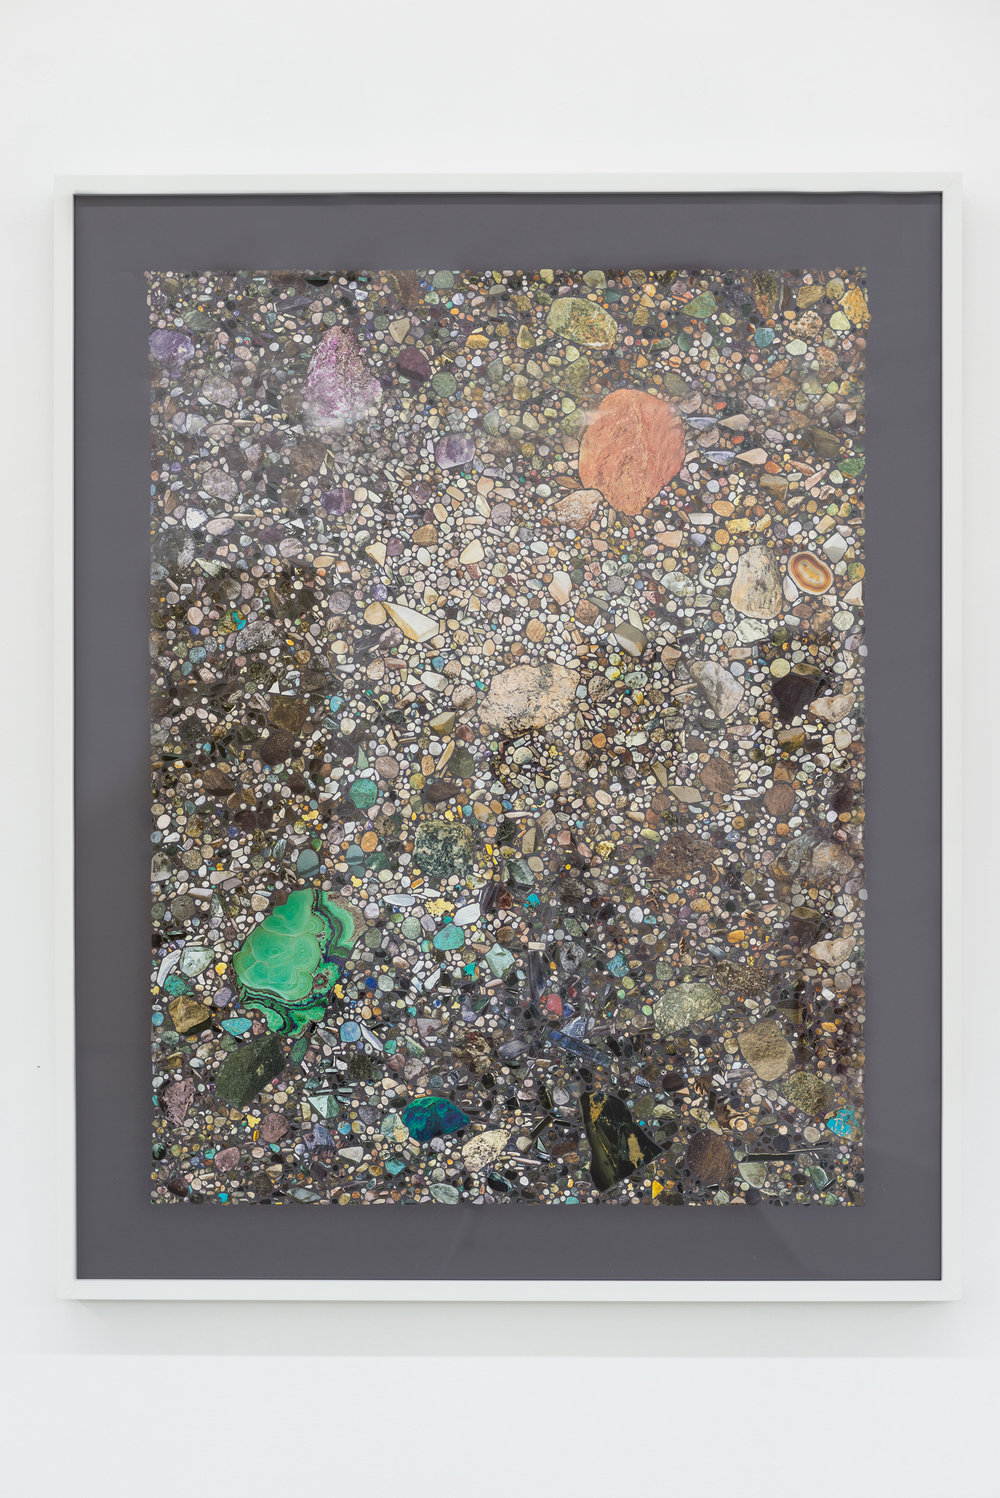 Rocks & Minerals VI, 2016 Collage on archival paper 40 x 32 inches, framed